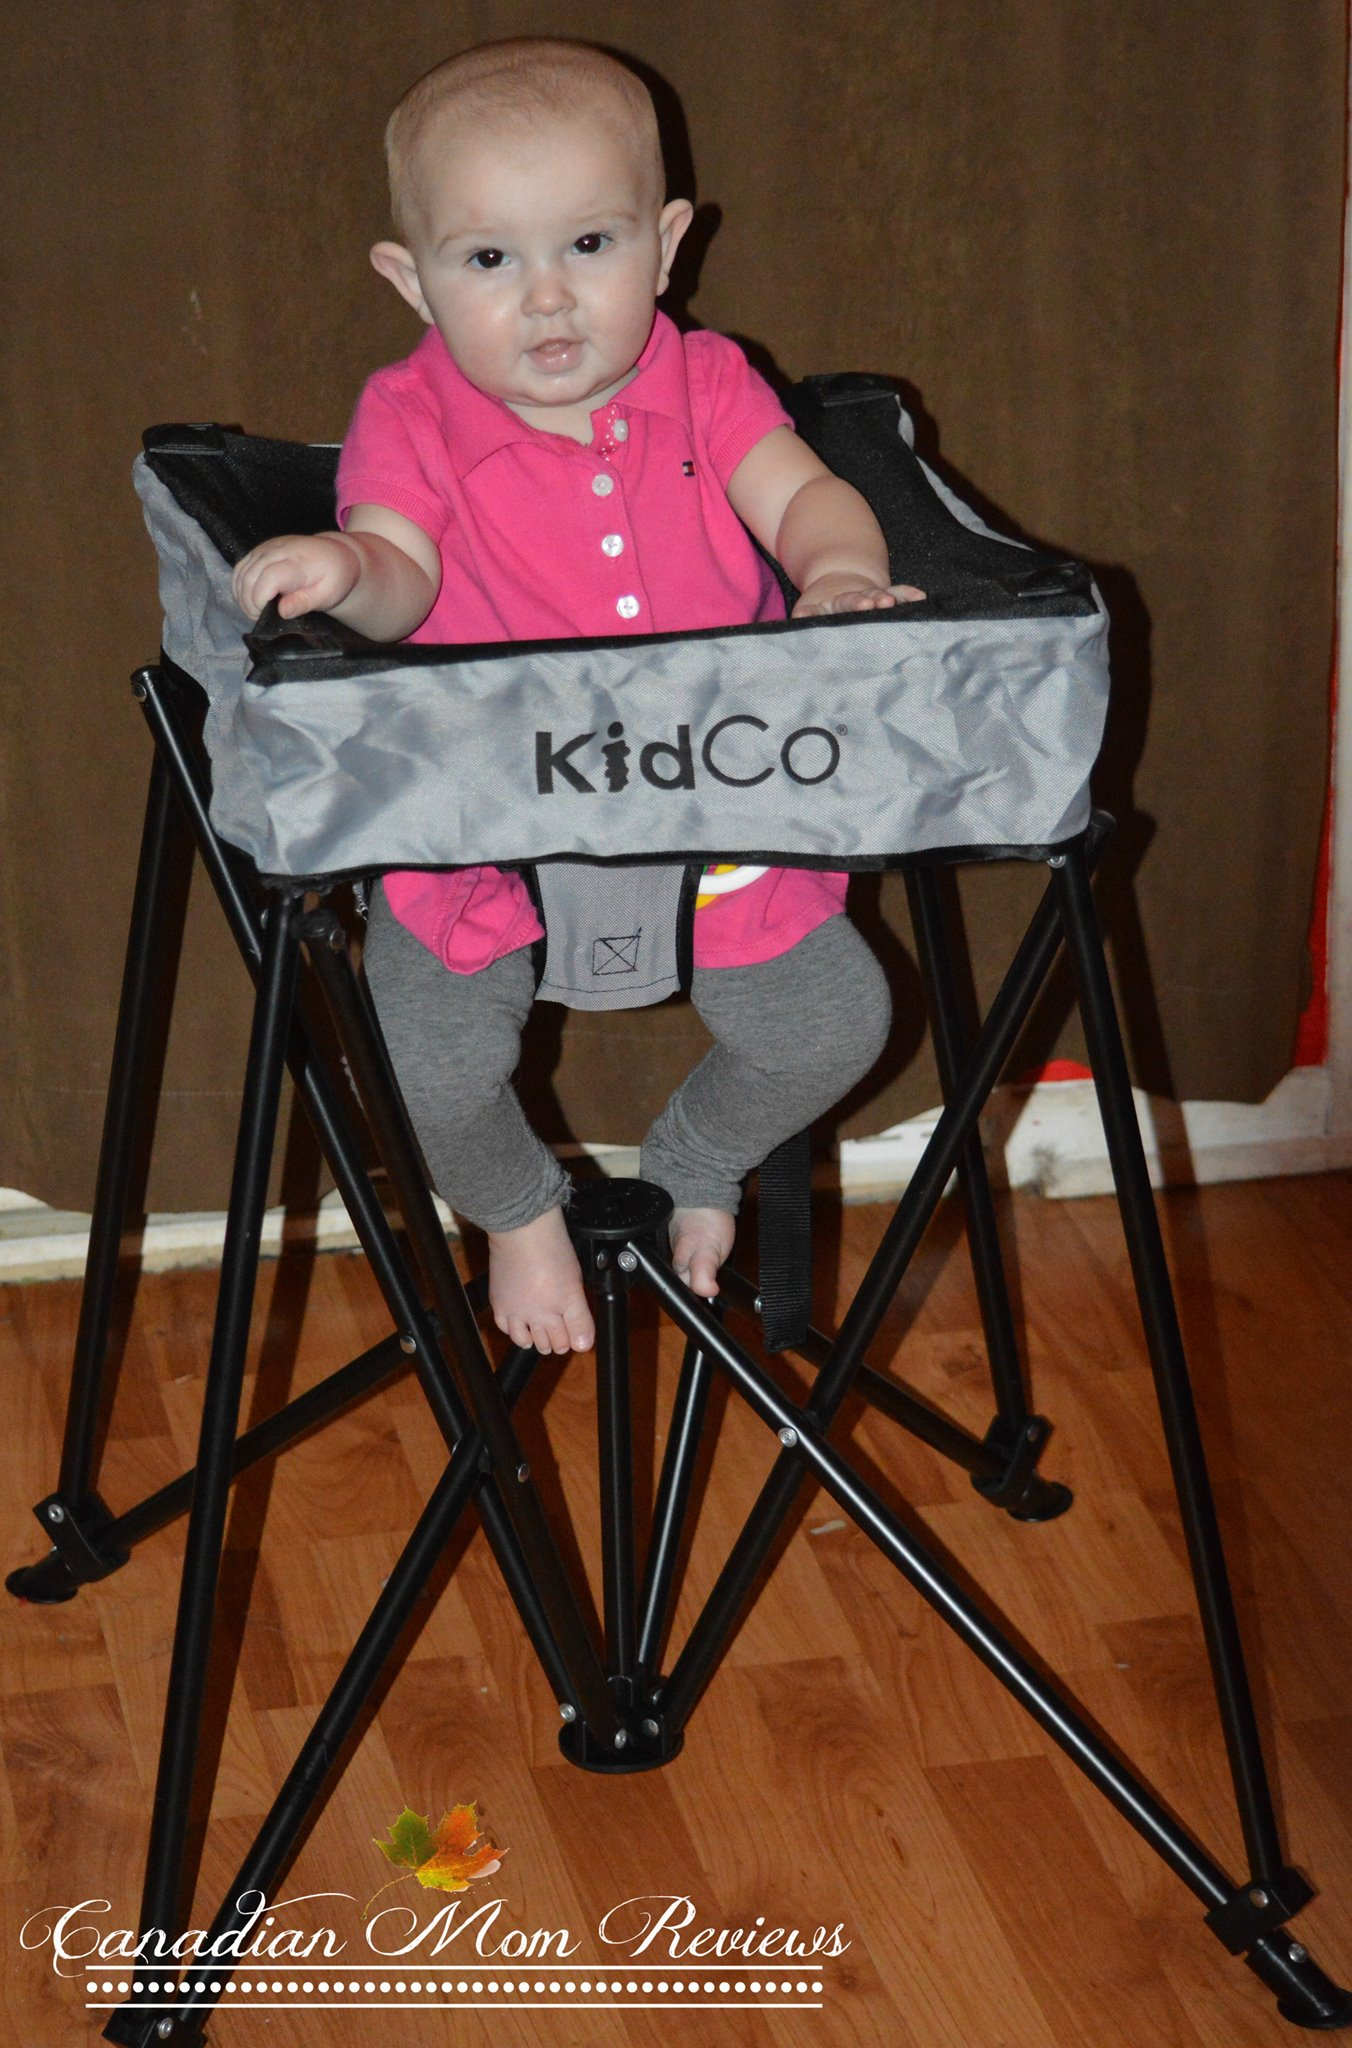 high chairs canada chair covers from argos dinepod portable canadian mom reviews